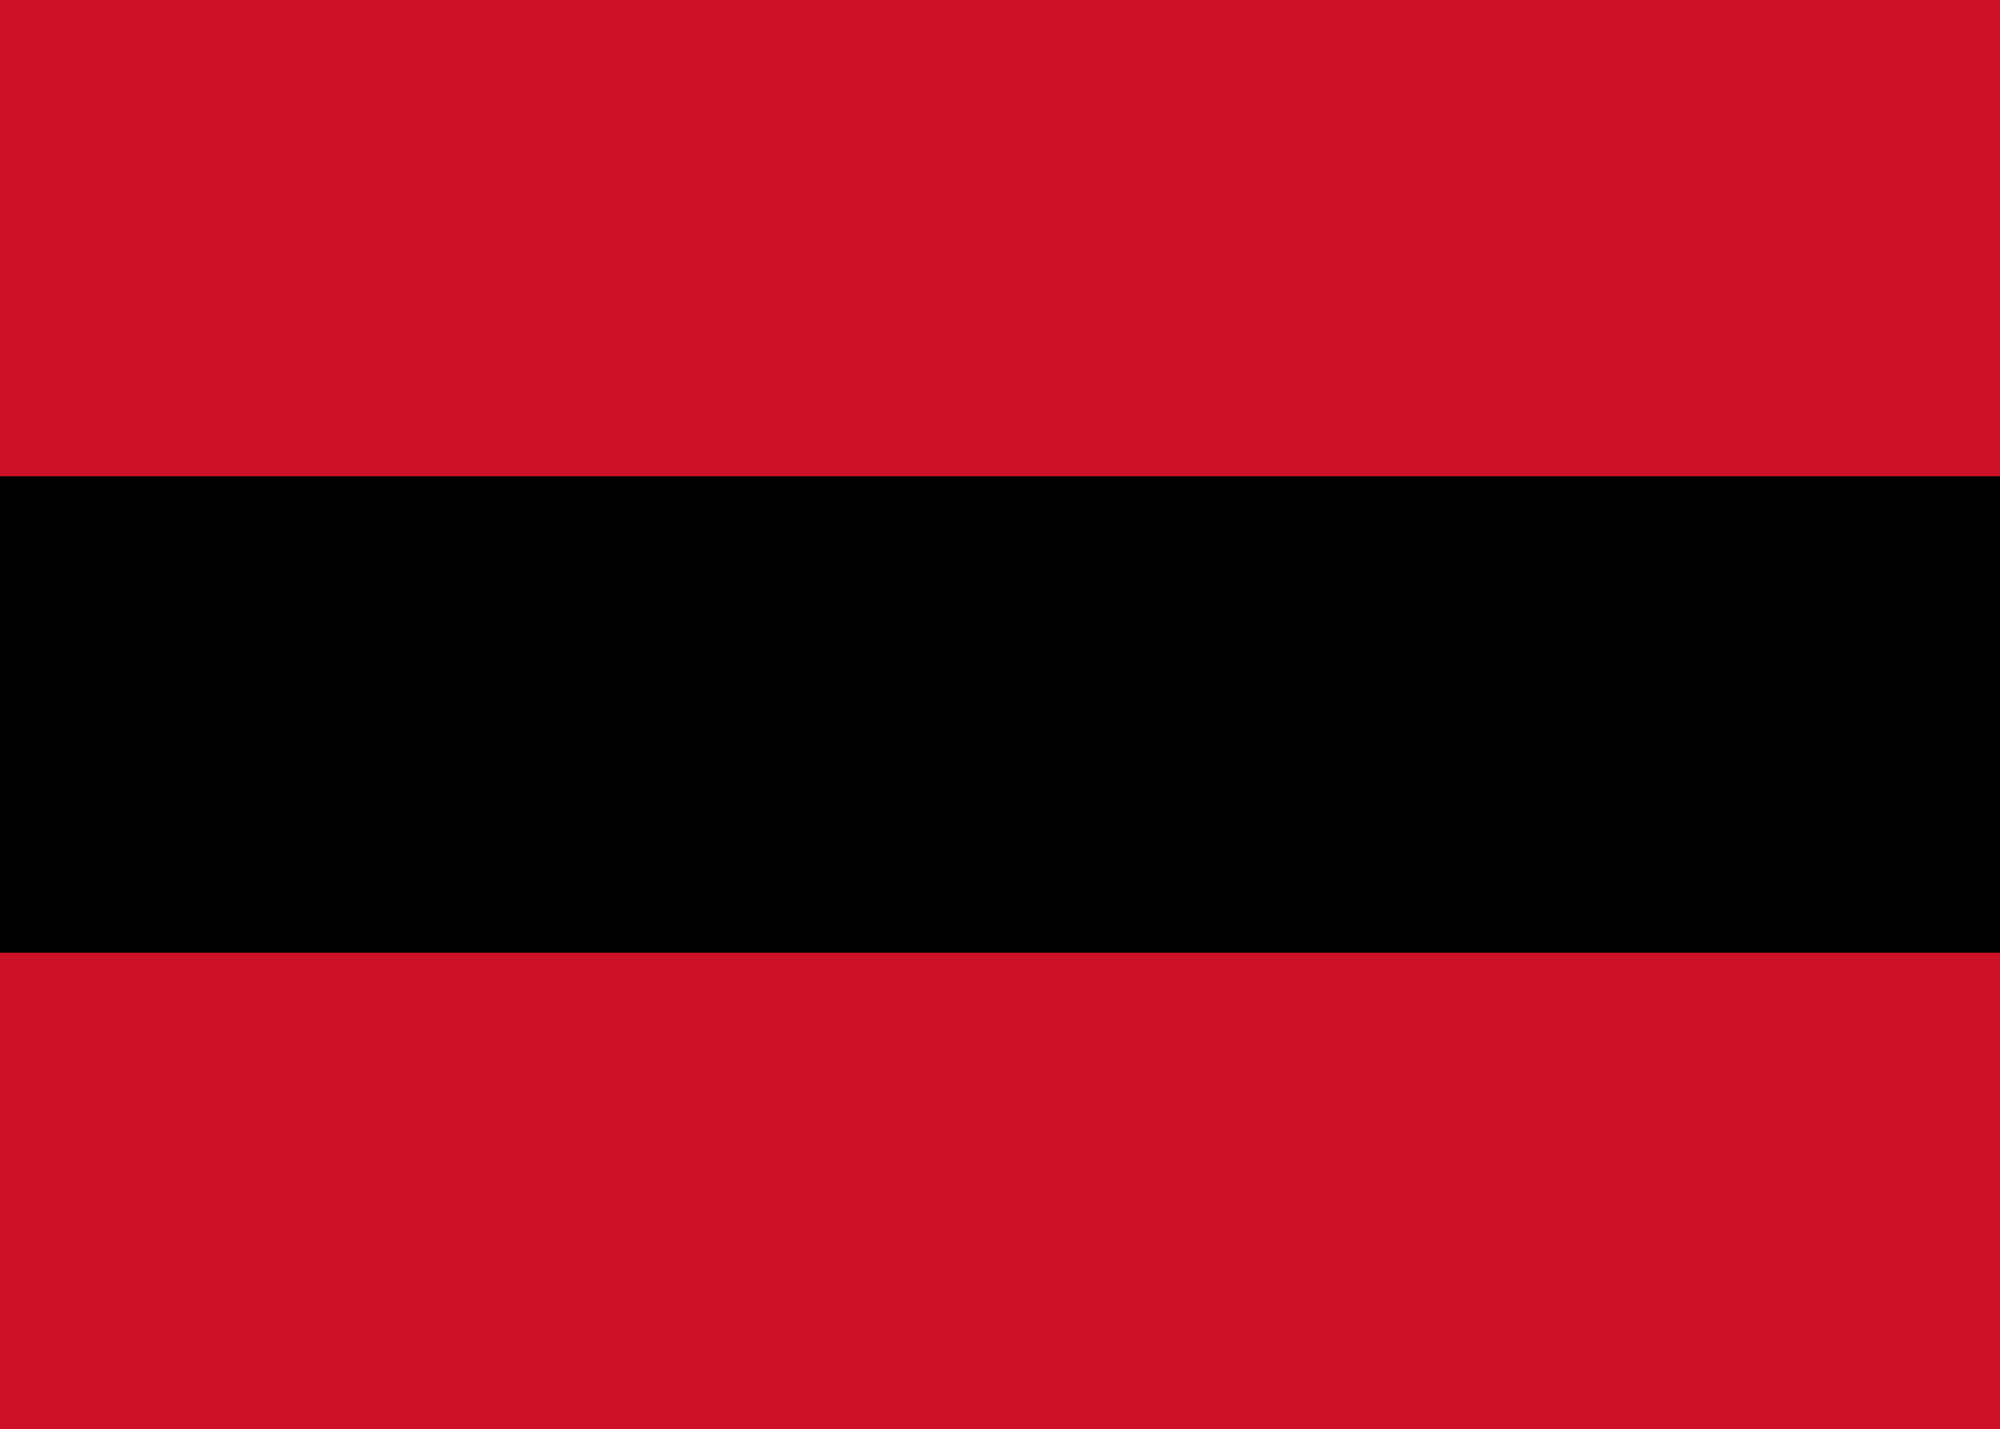 Flag of Albania (Civil Ensign)